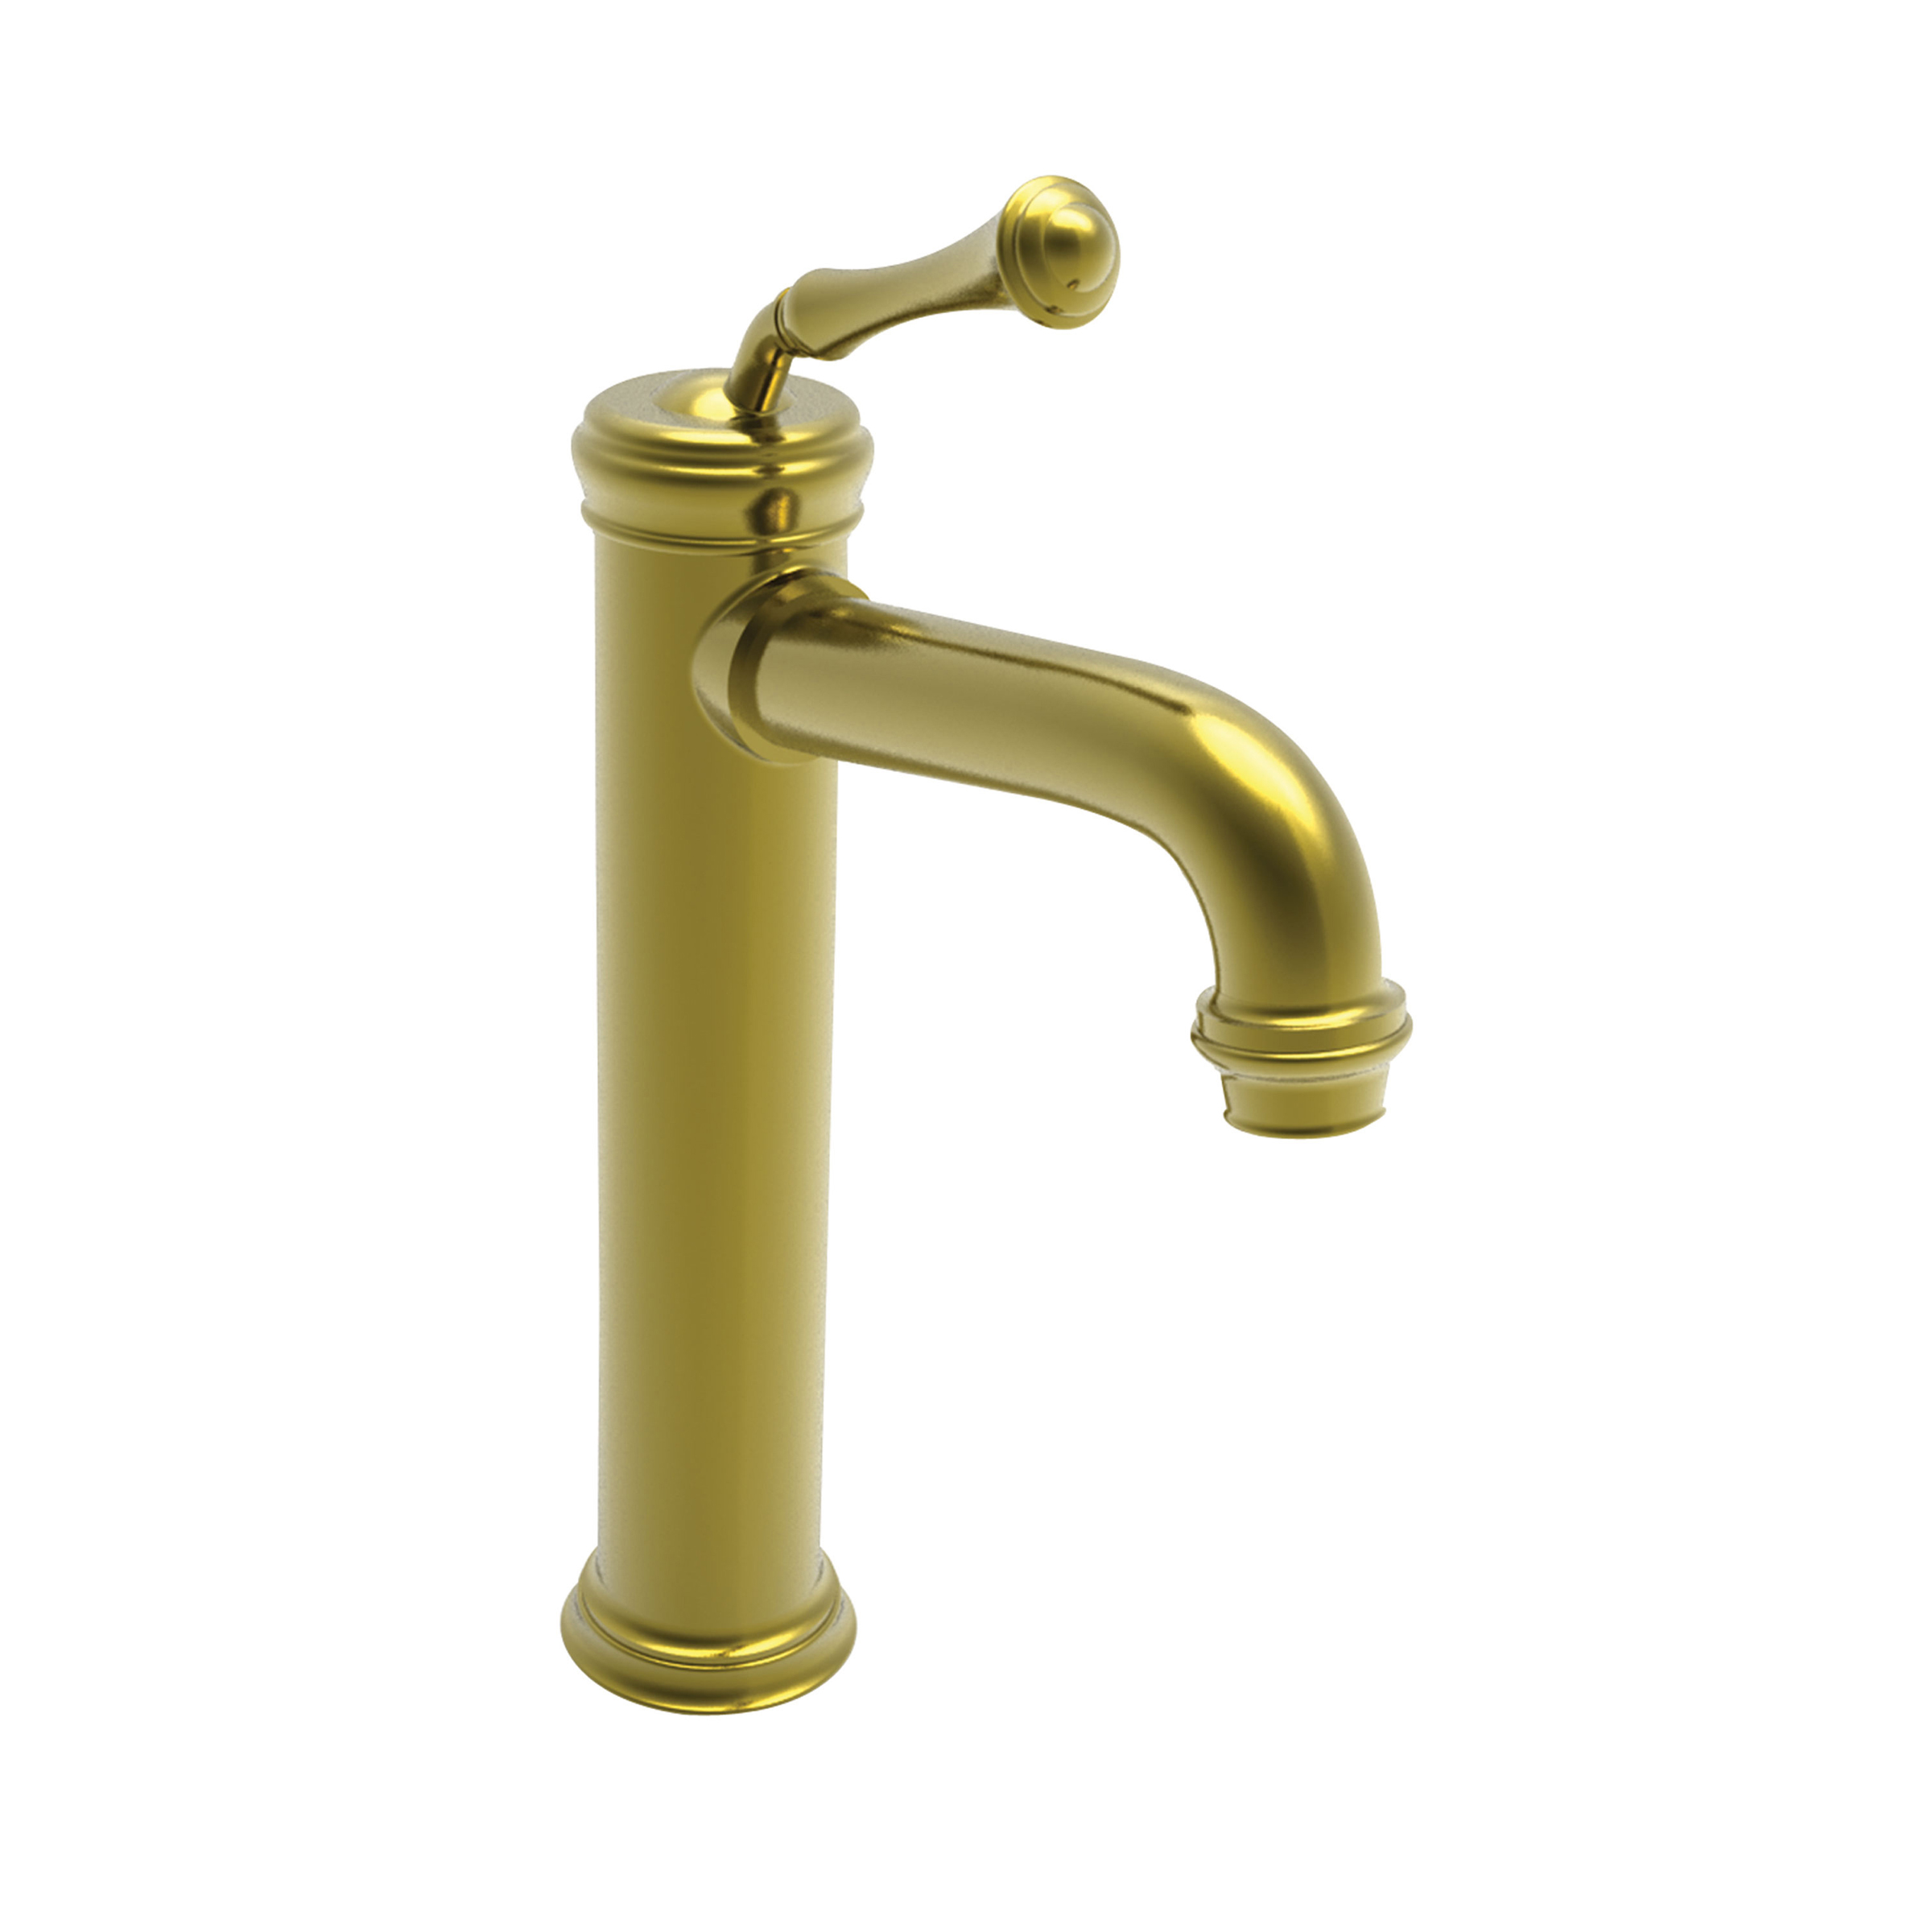 Newport brass 9208 single hole lavatory faucet tall newport brass faucets Newport brass bathroom faucets